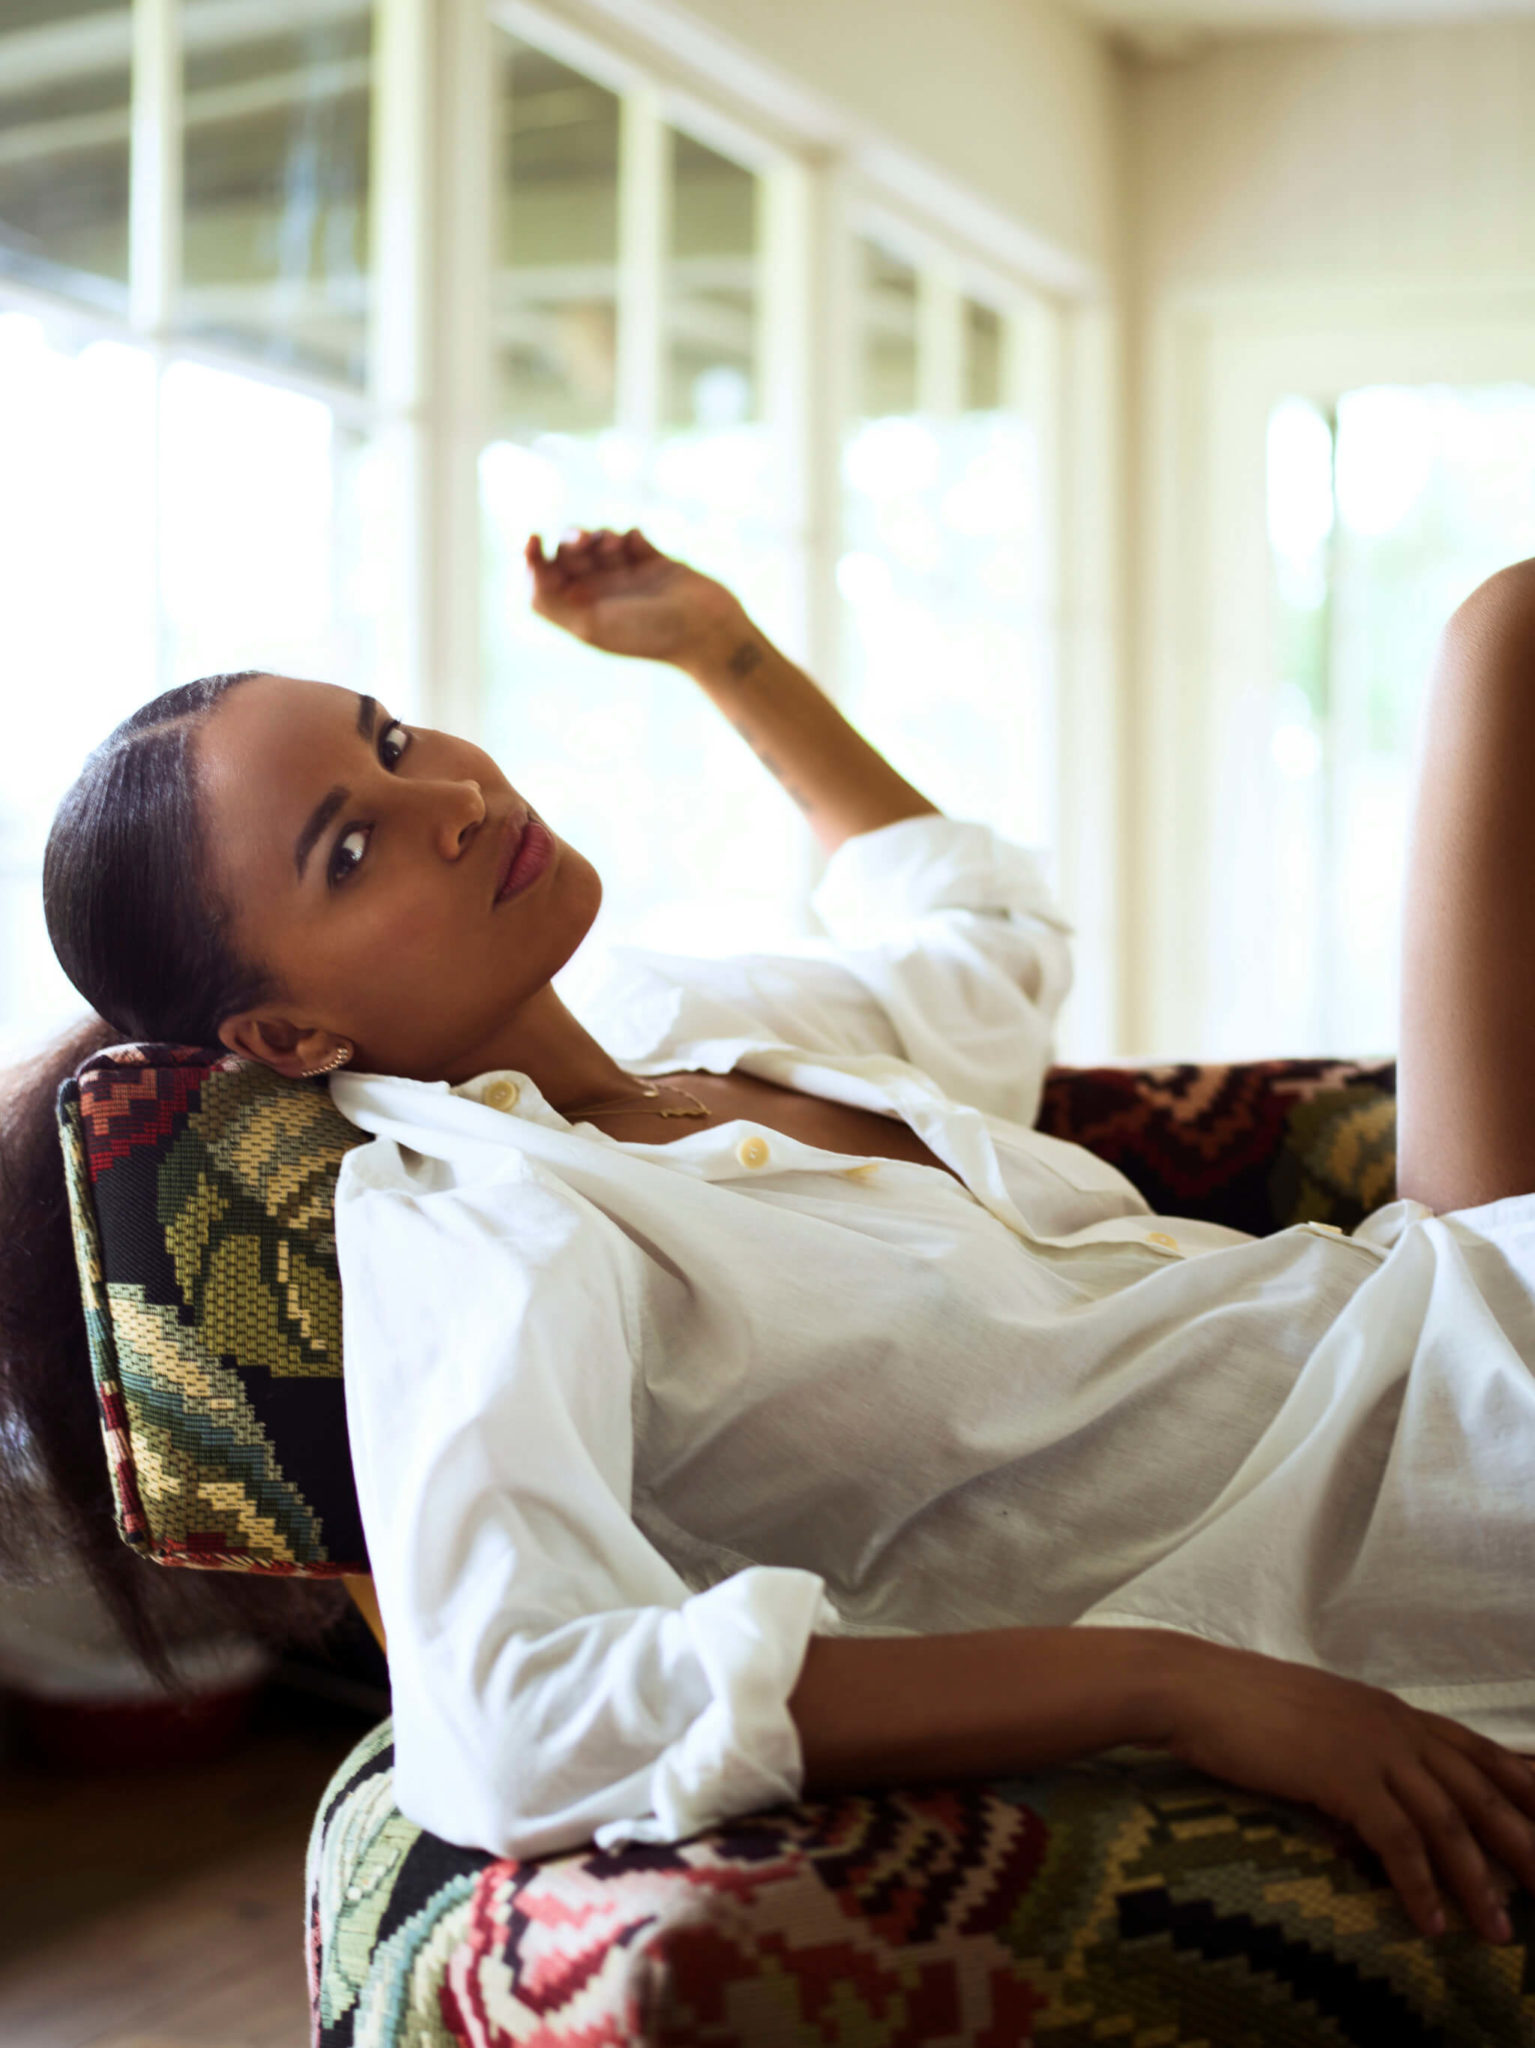 Joy Bryant actress Los angeles photopgraphed by Chris singer chrissinger